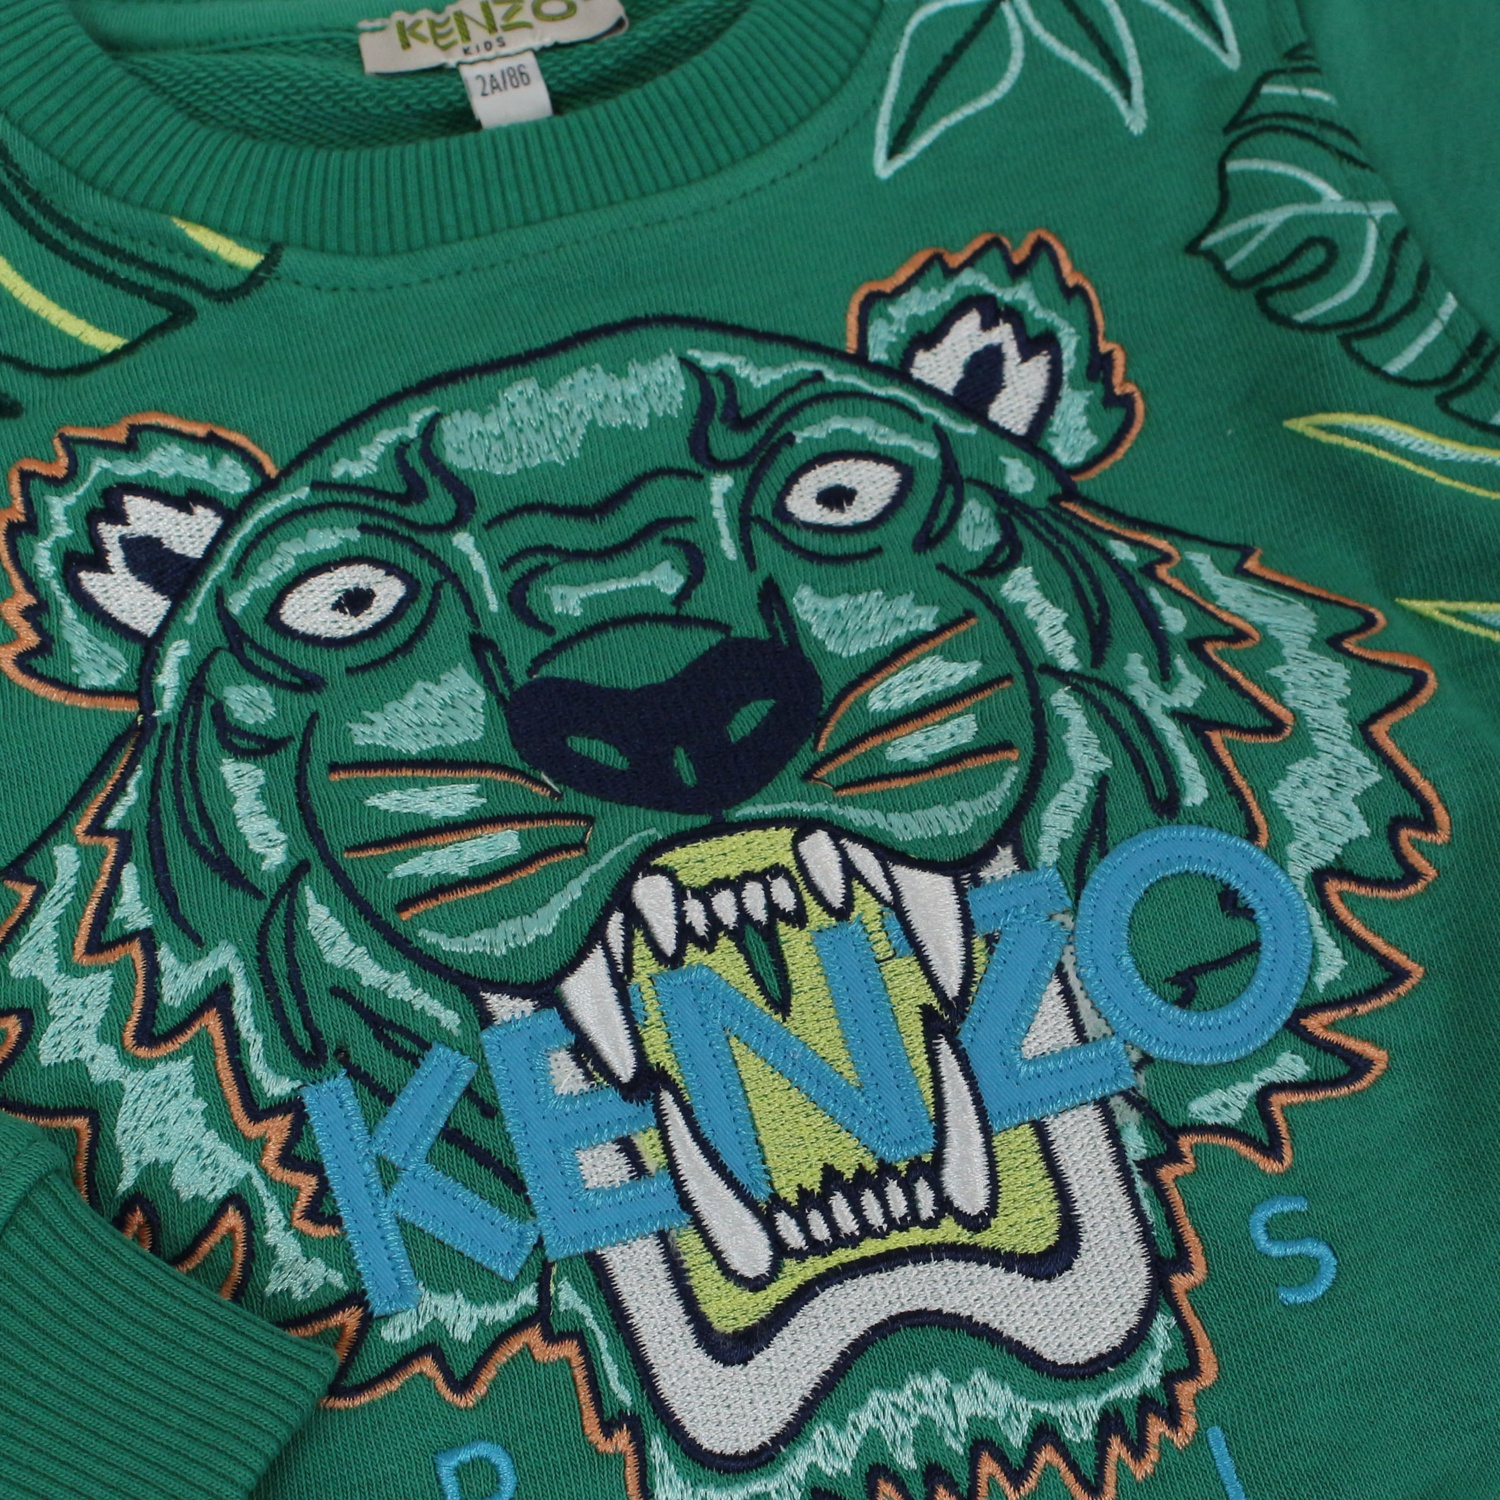 c331791a Sweatshirt with Tiger embroidery Green KENZO Sweatshirt with Tiger  embroidery Green KENZO ...